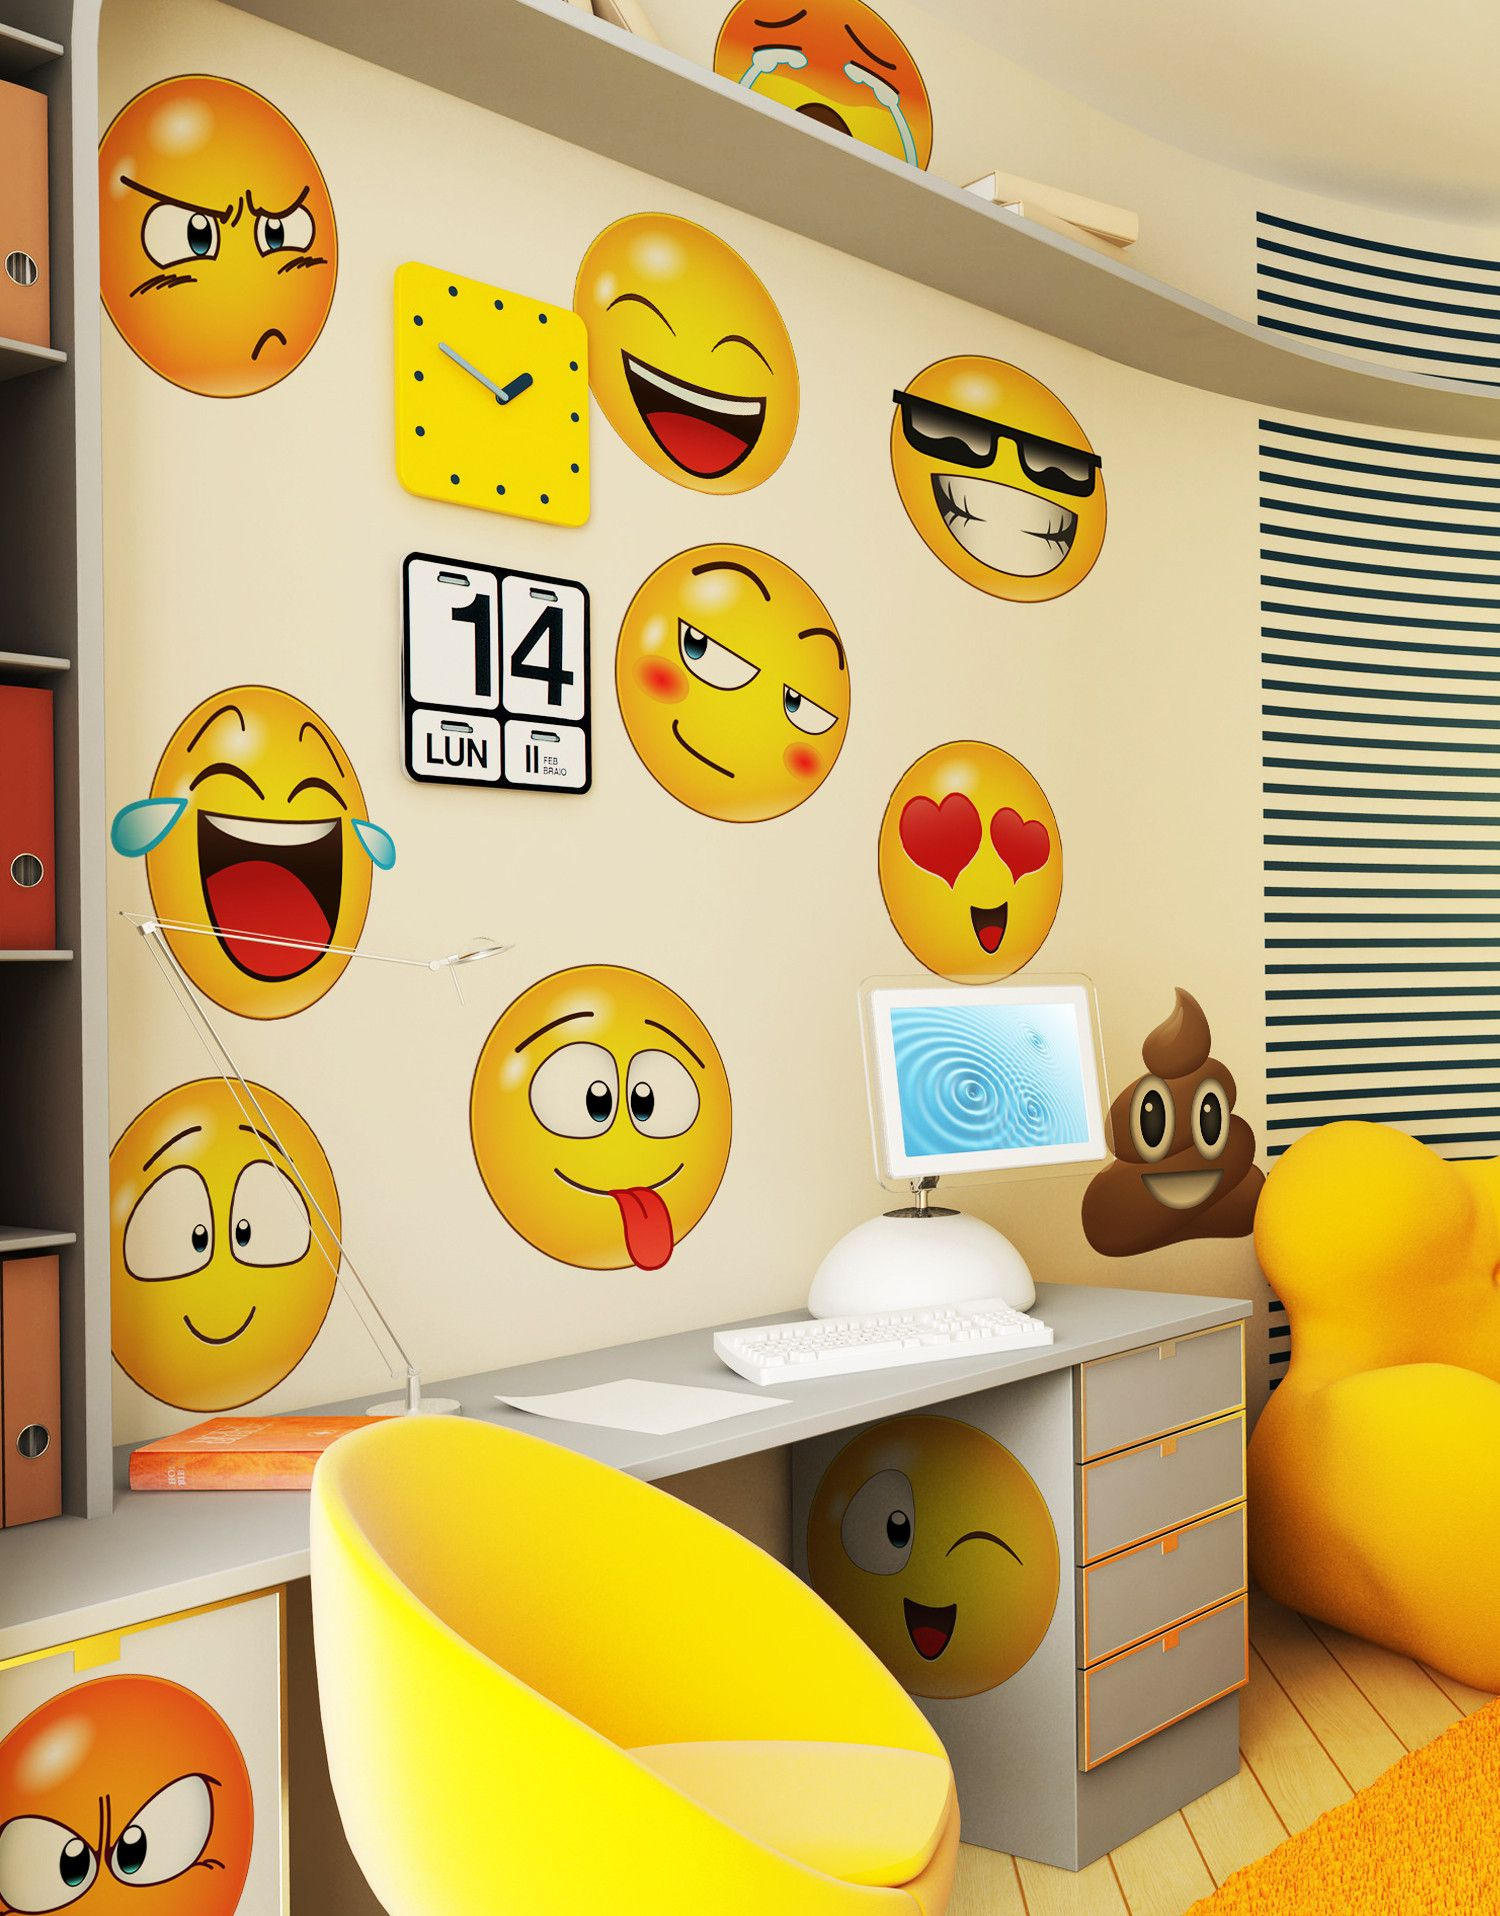 Large Emoji Faces Wall Decal Sticker #6052 | Emoji faces, Emoji and ...